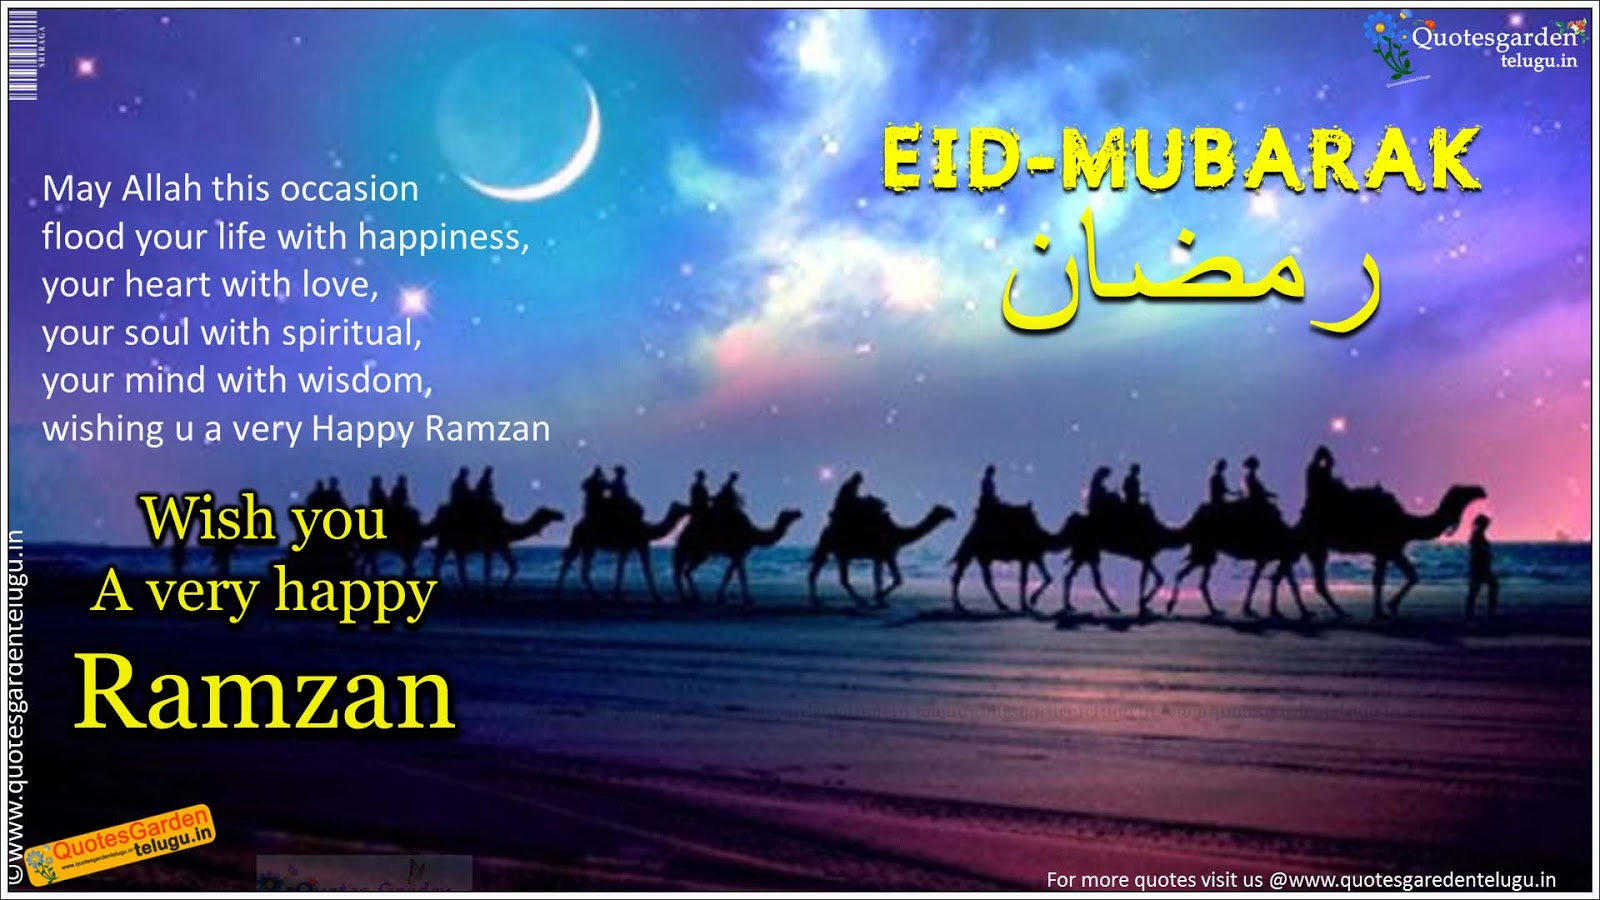 Best Ramzan Festival Greetings E Cards QUOTES GARDEN